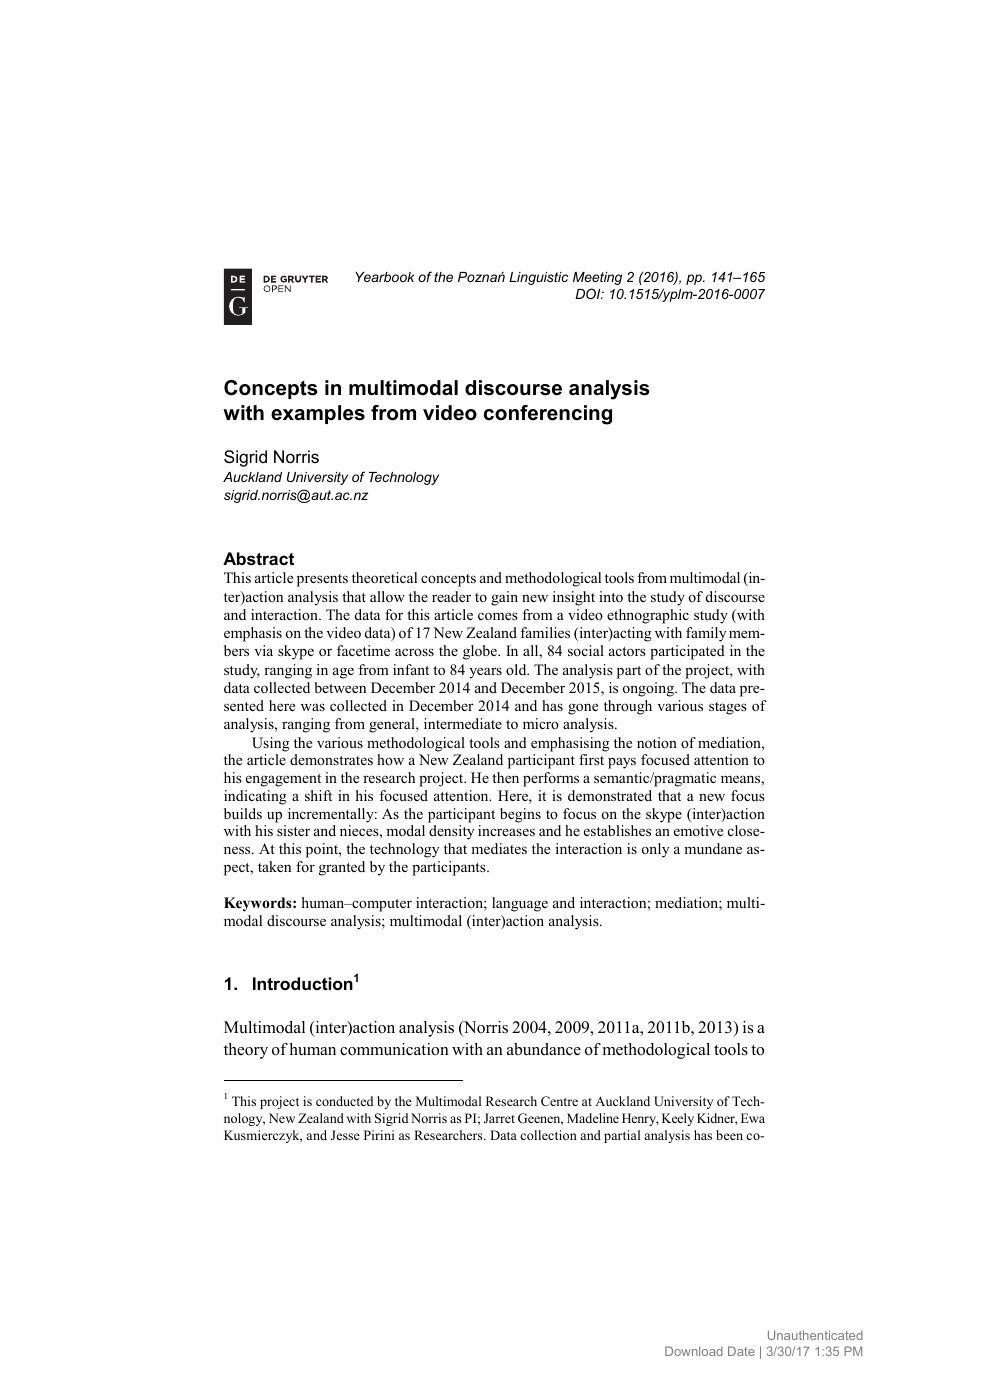 Concepts in multimodal discourse analysis with examples from video ...